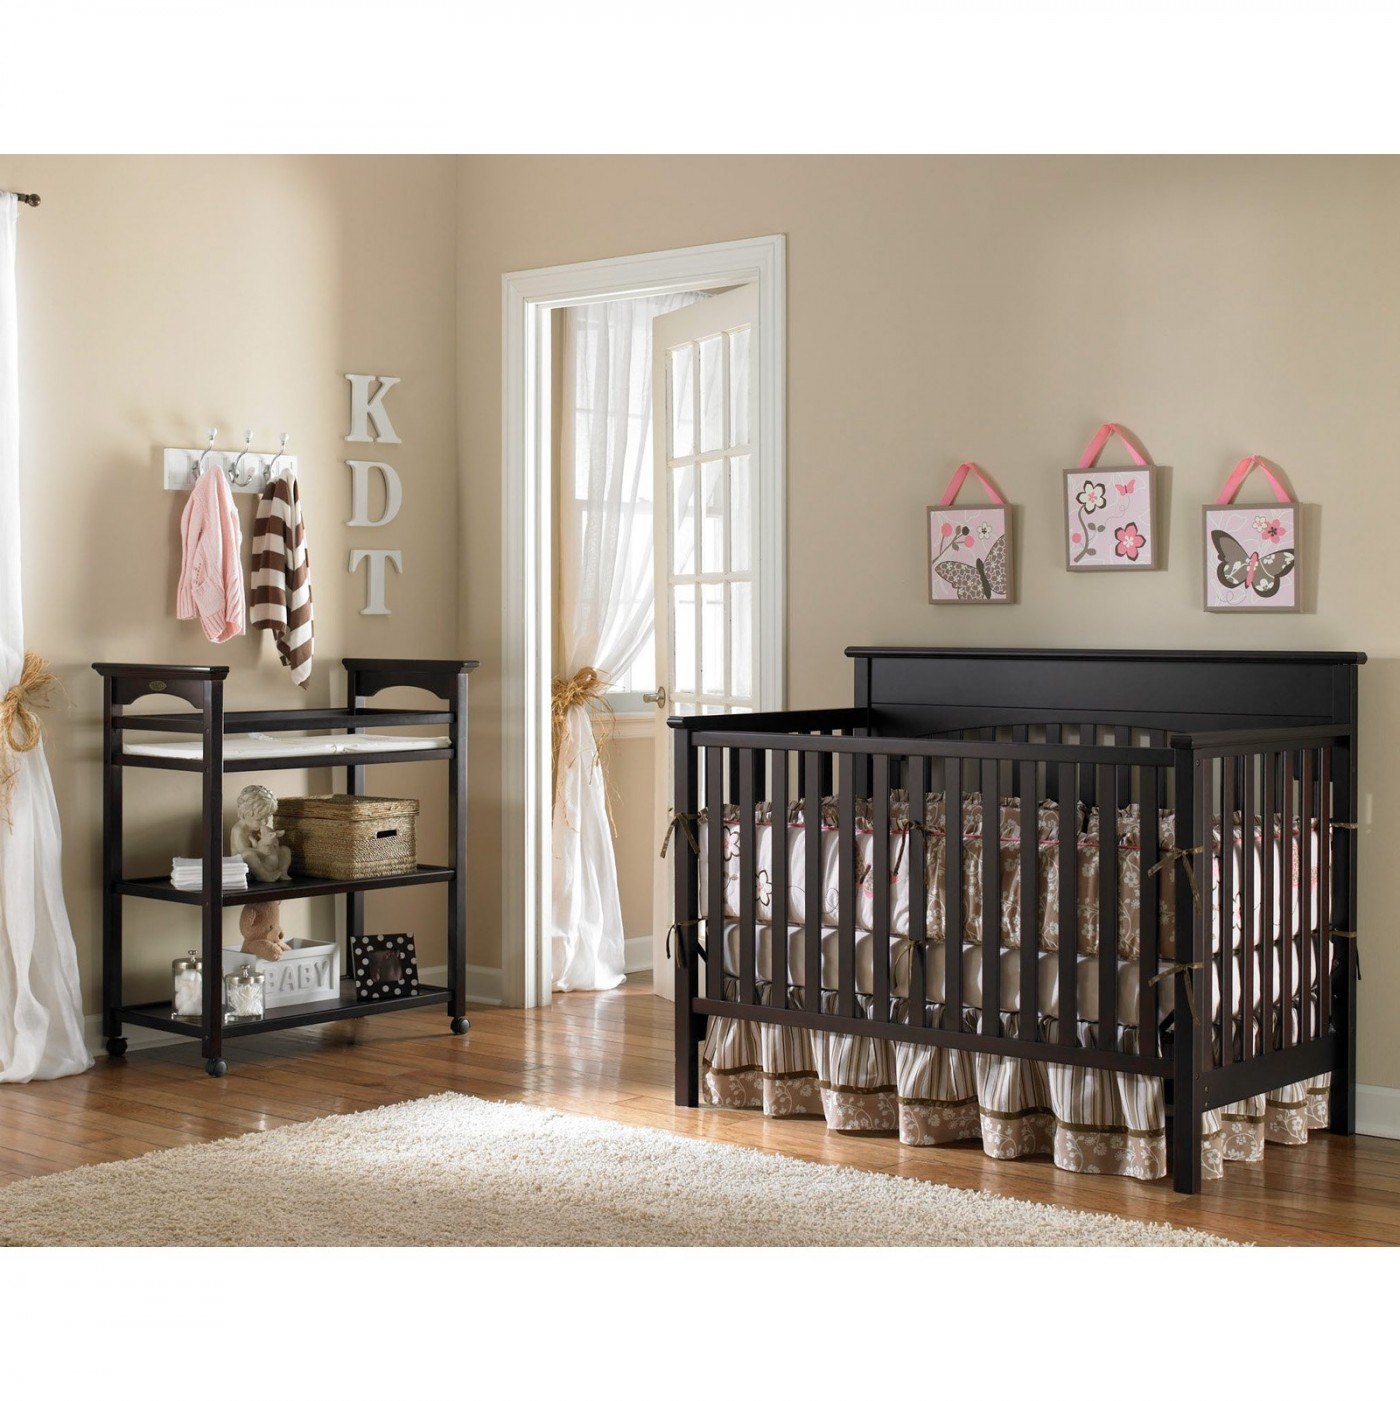 Upscale Baby Cribs | Expensive Cribs | Restoration Hardware Cribs